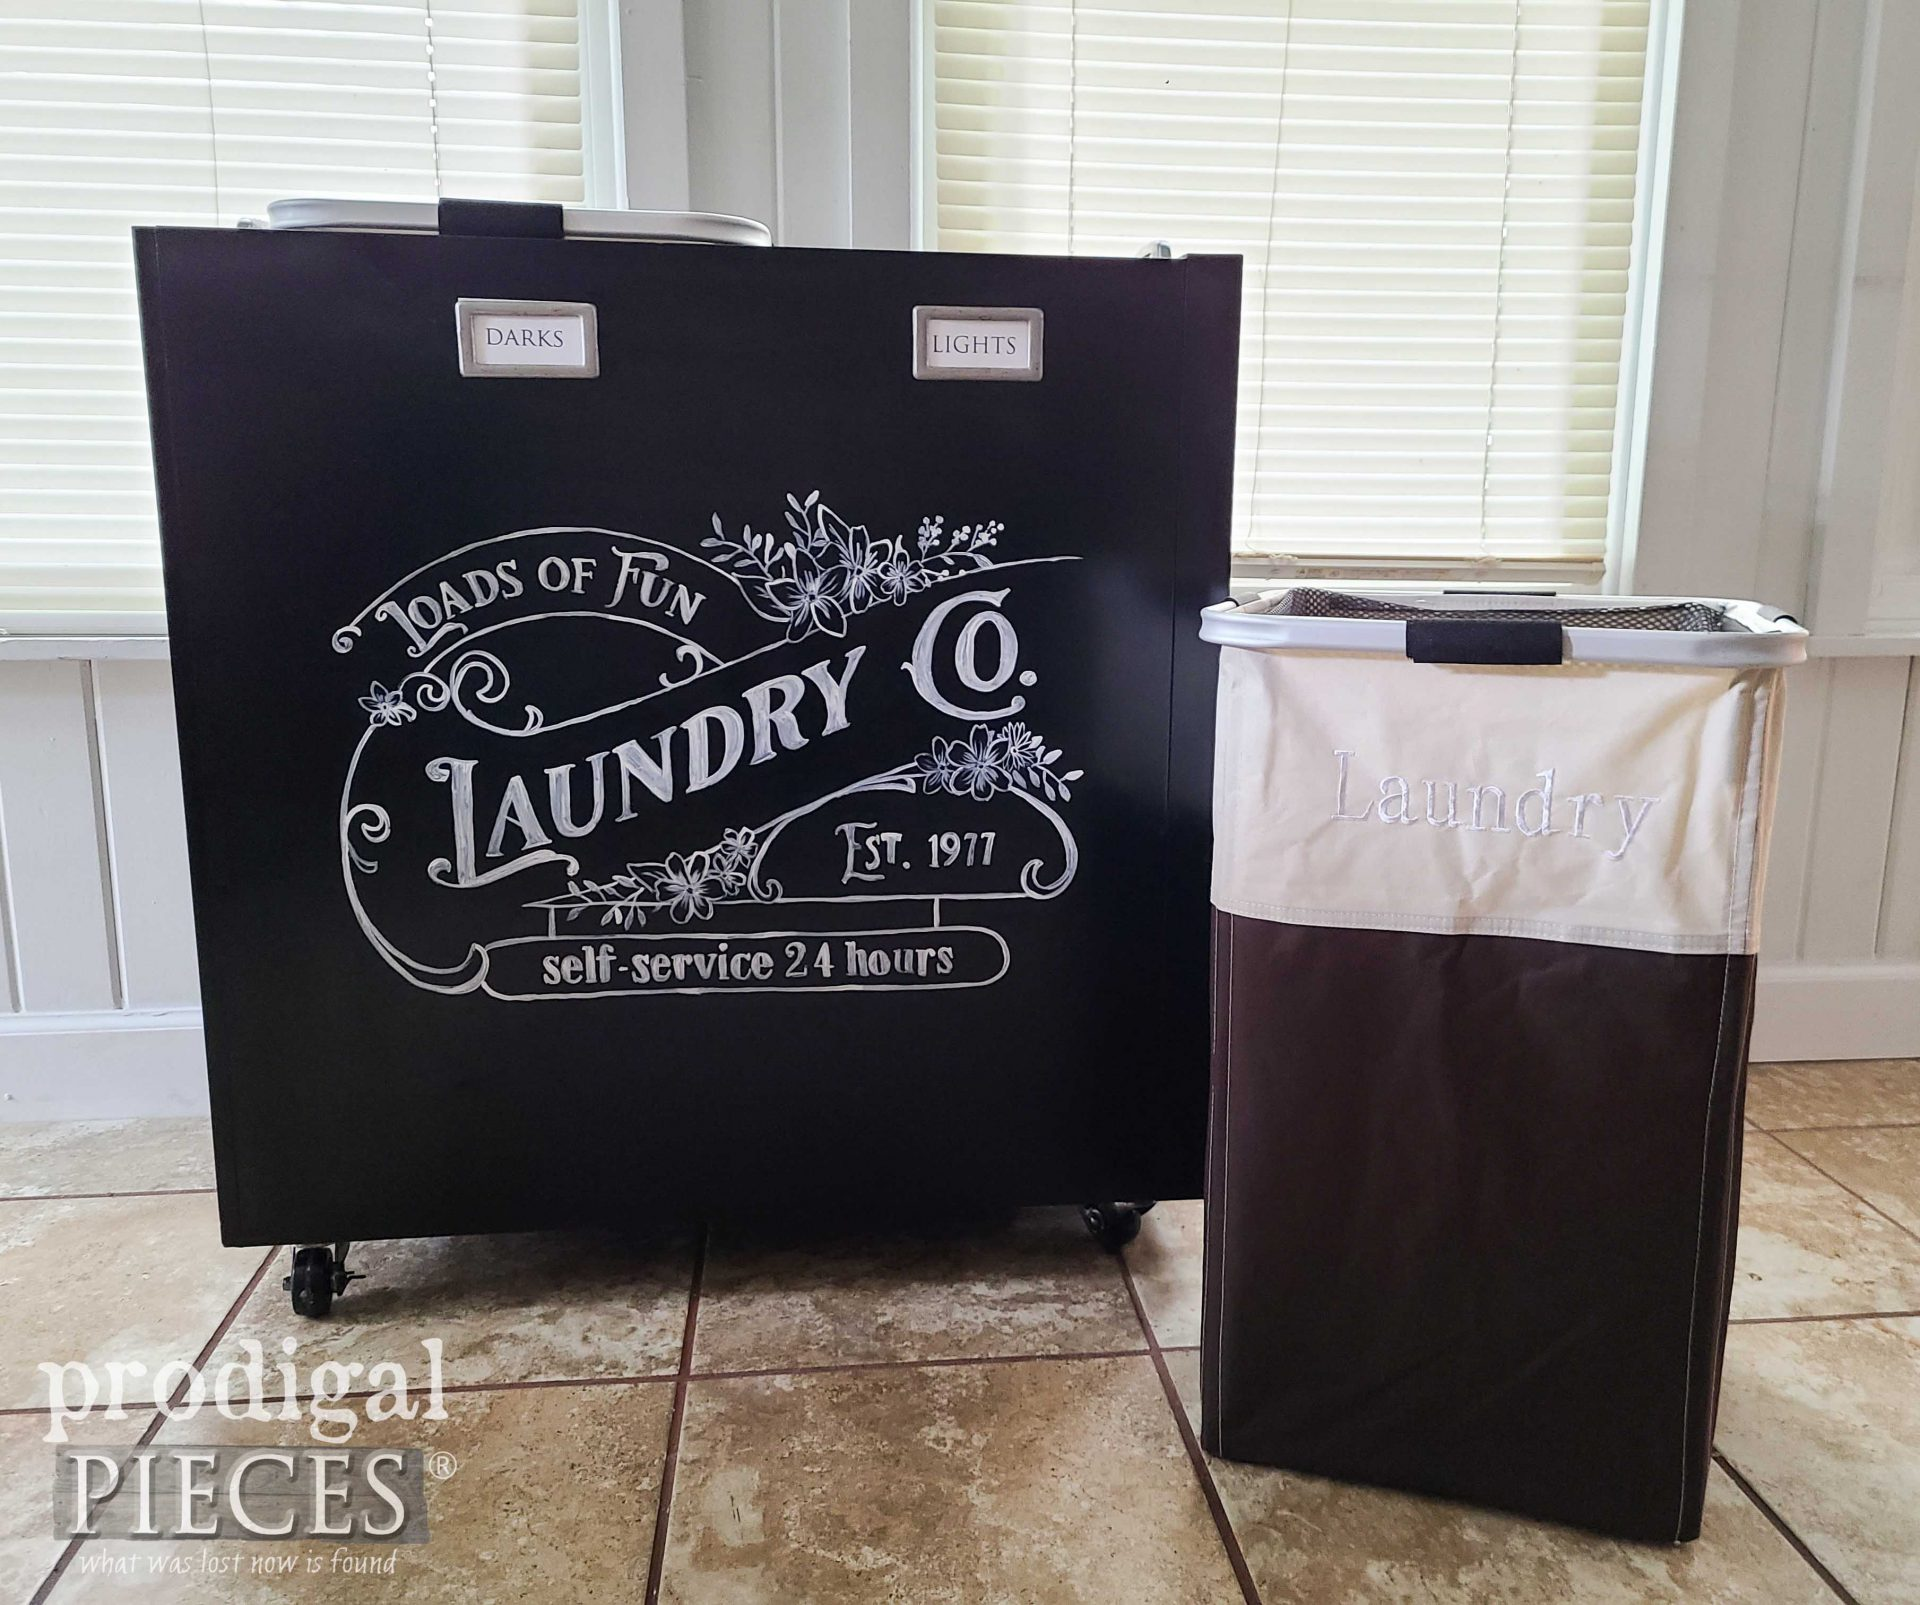 Repurposed Filing Cabinet Turned Rolling Laundry Bin by Larissa of Prodigal Pieces   prodigalpieces.com #prodigalpieces #laundry #repurposed #upcycled